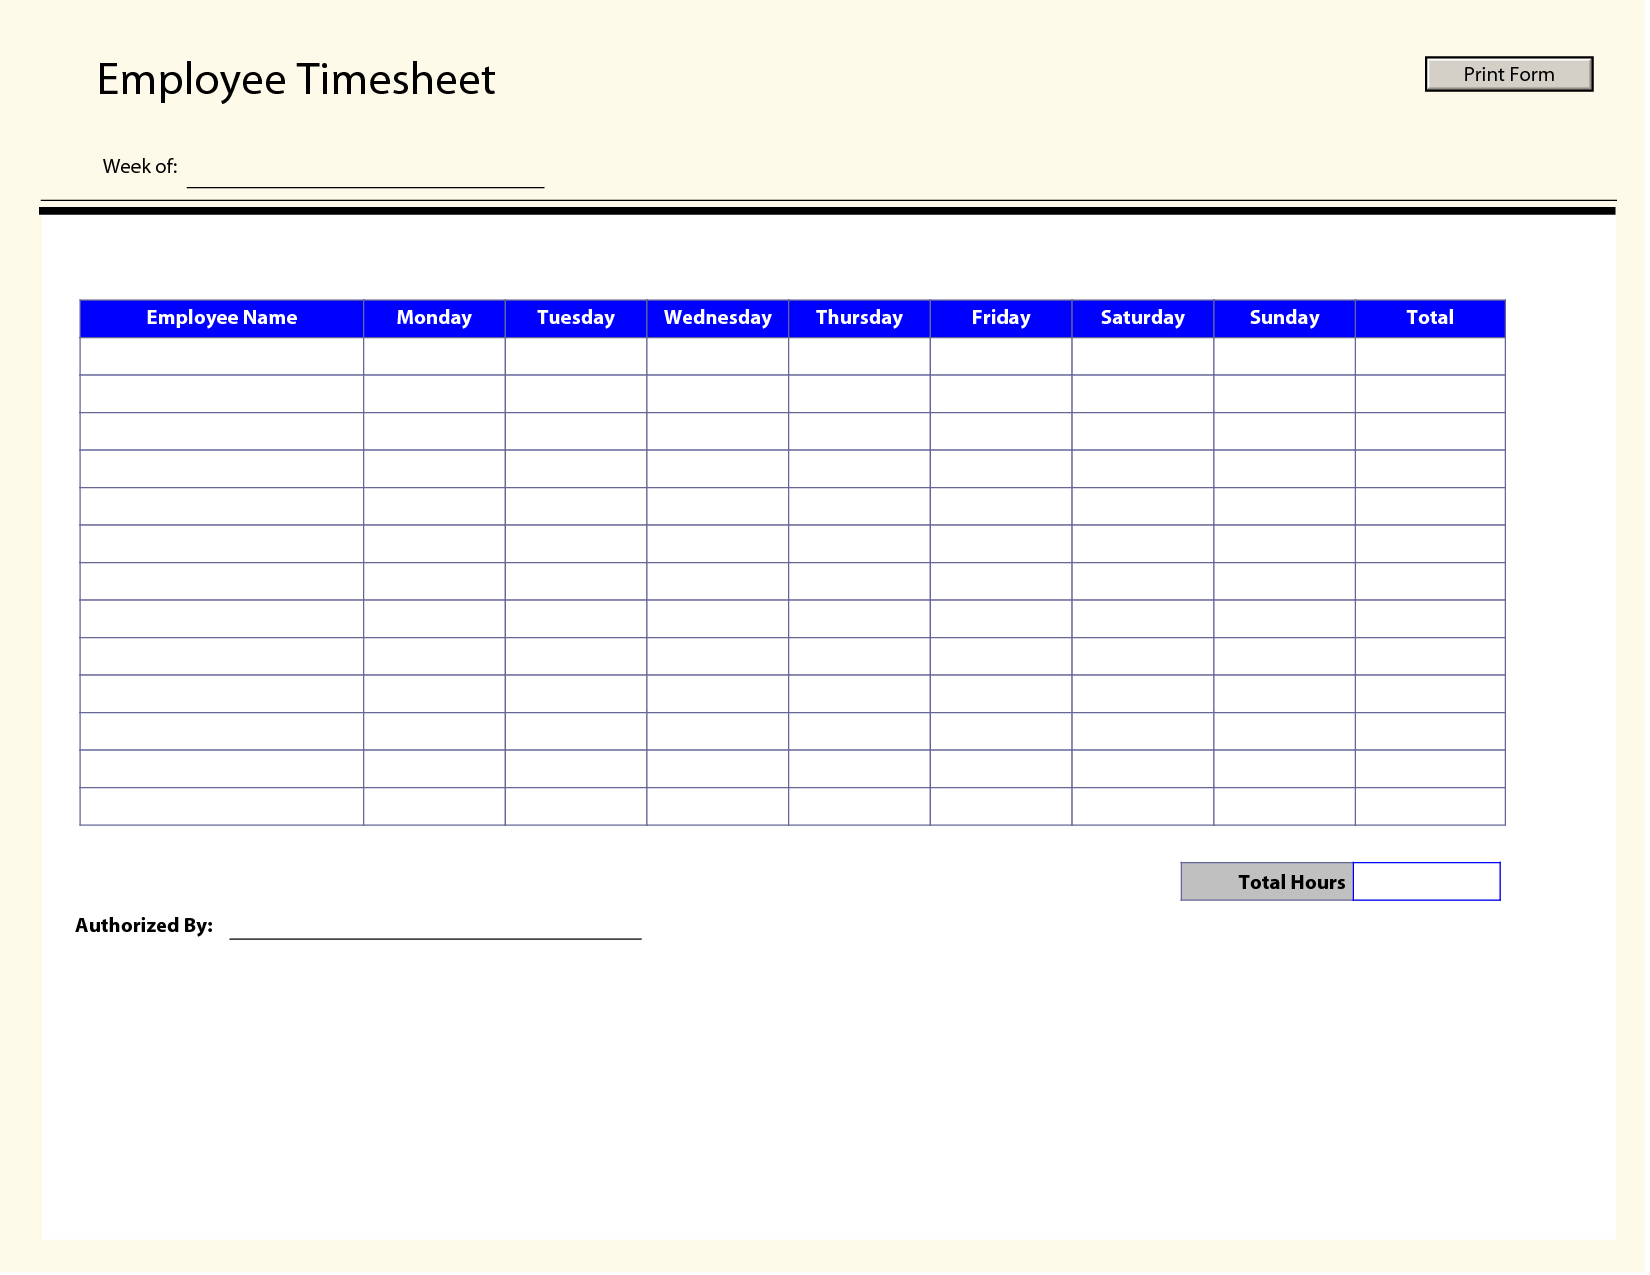 Timesheet Invoice Template Free and Blank Employee Timesheet Template Management Templates